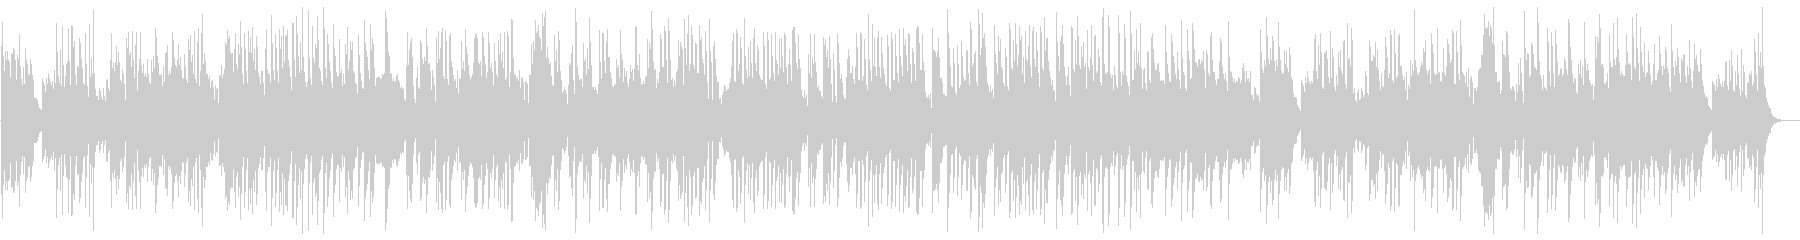 A lovely and light classical piano sound's unreproduced waveform